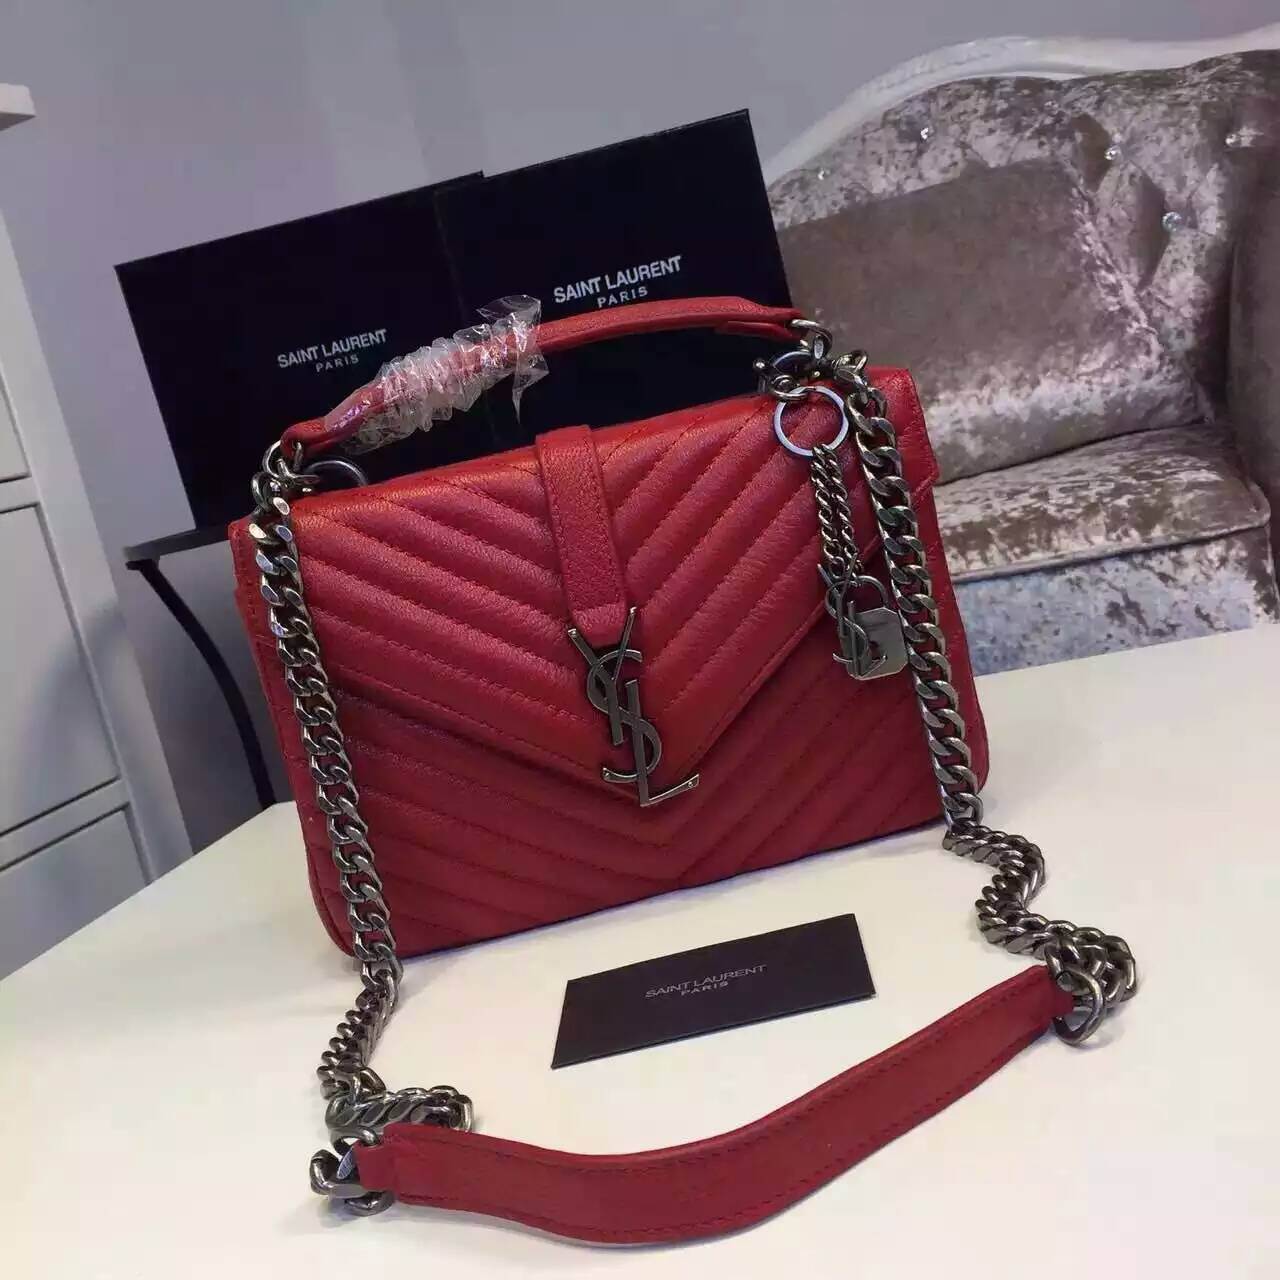 d01809b0e950 Discount information for YSL Bags - YSL Bags Outlet